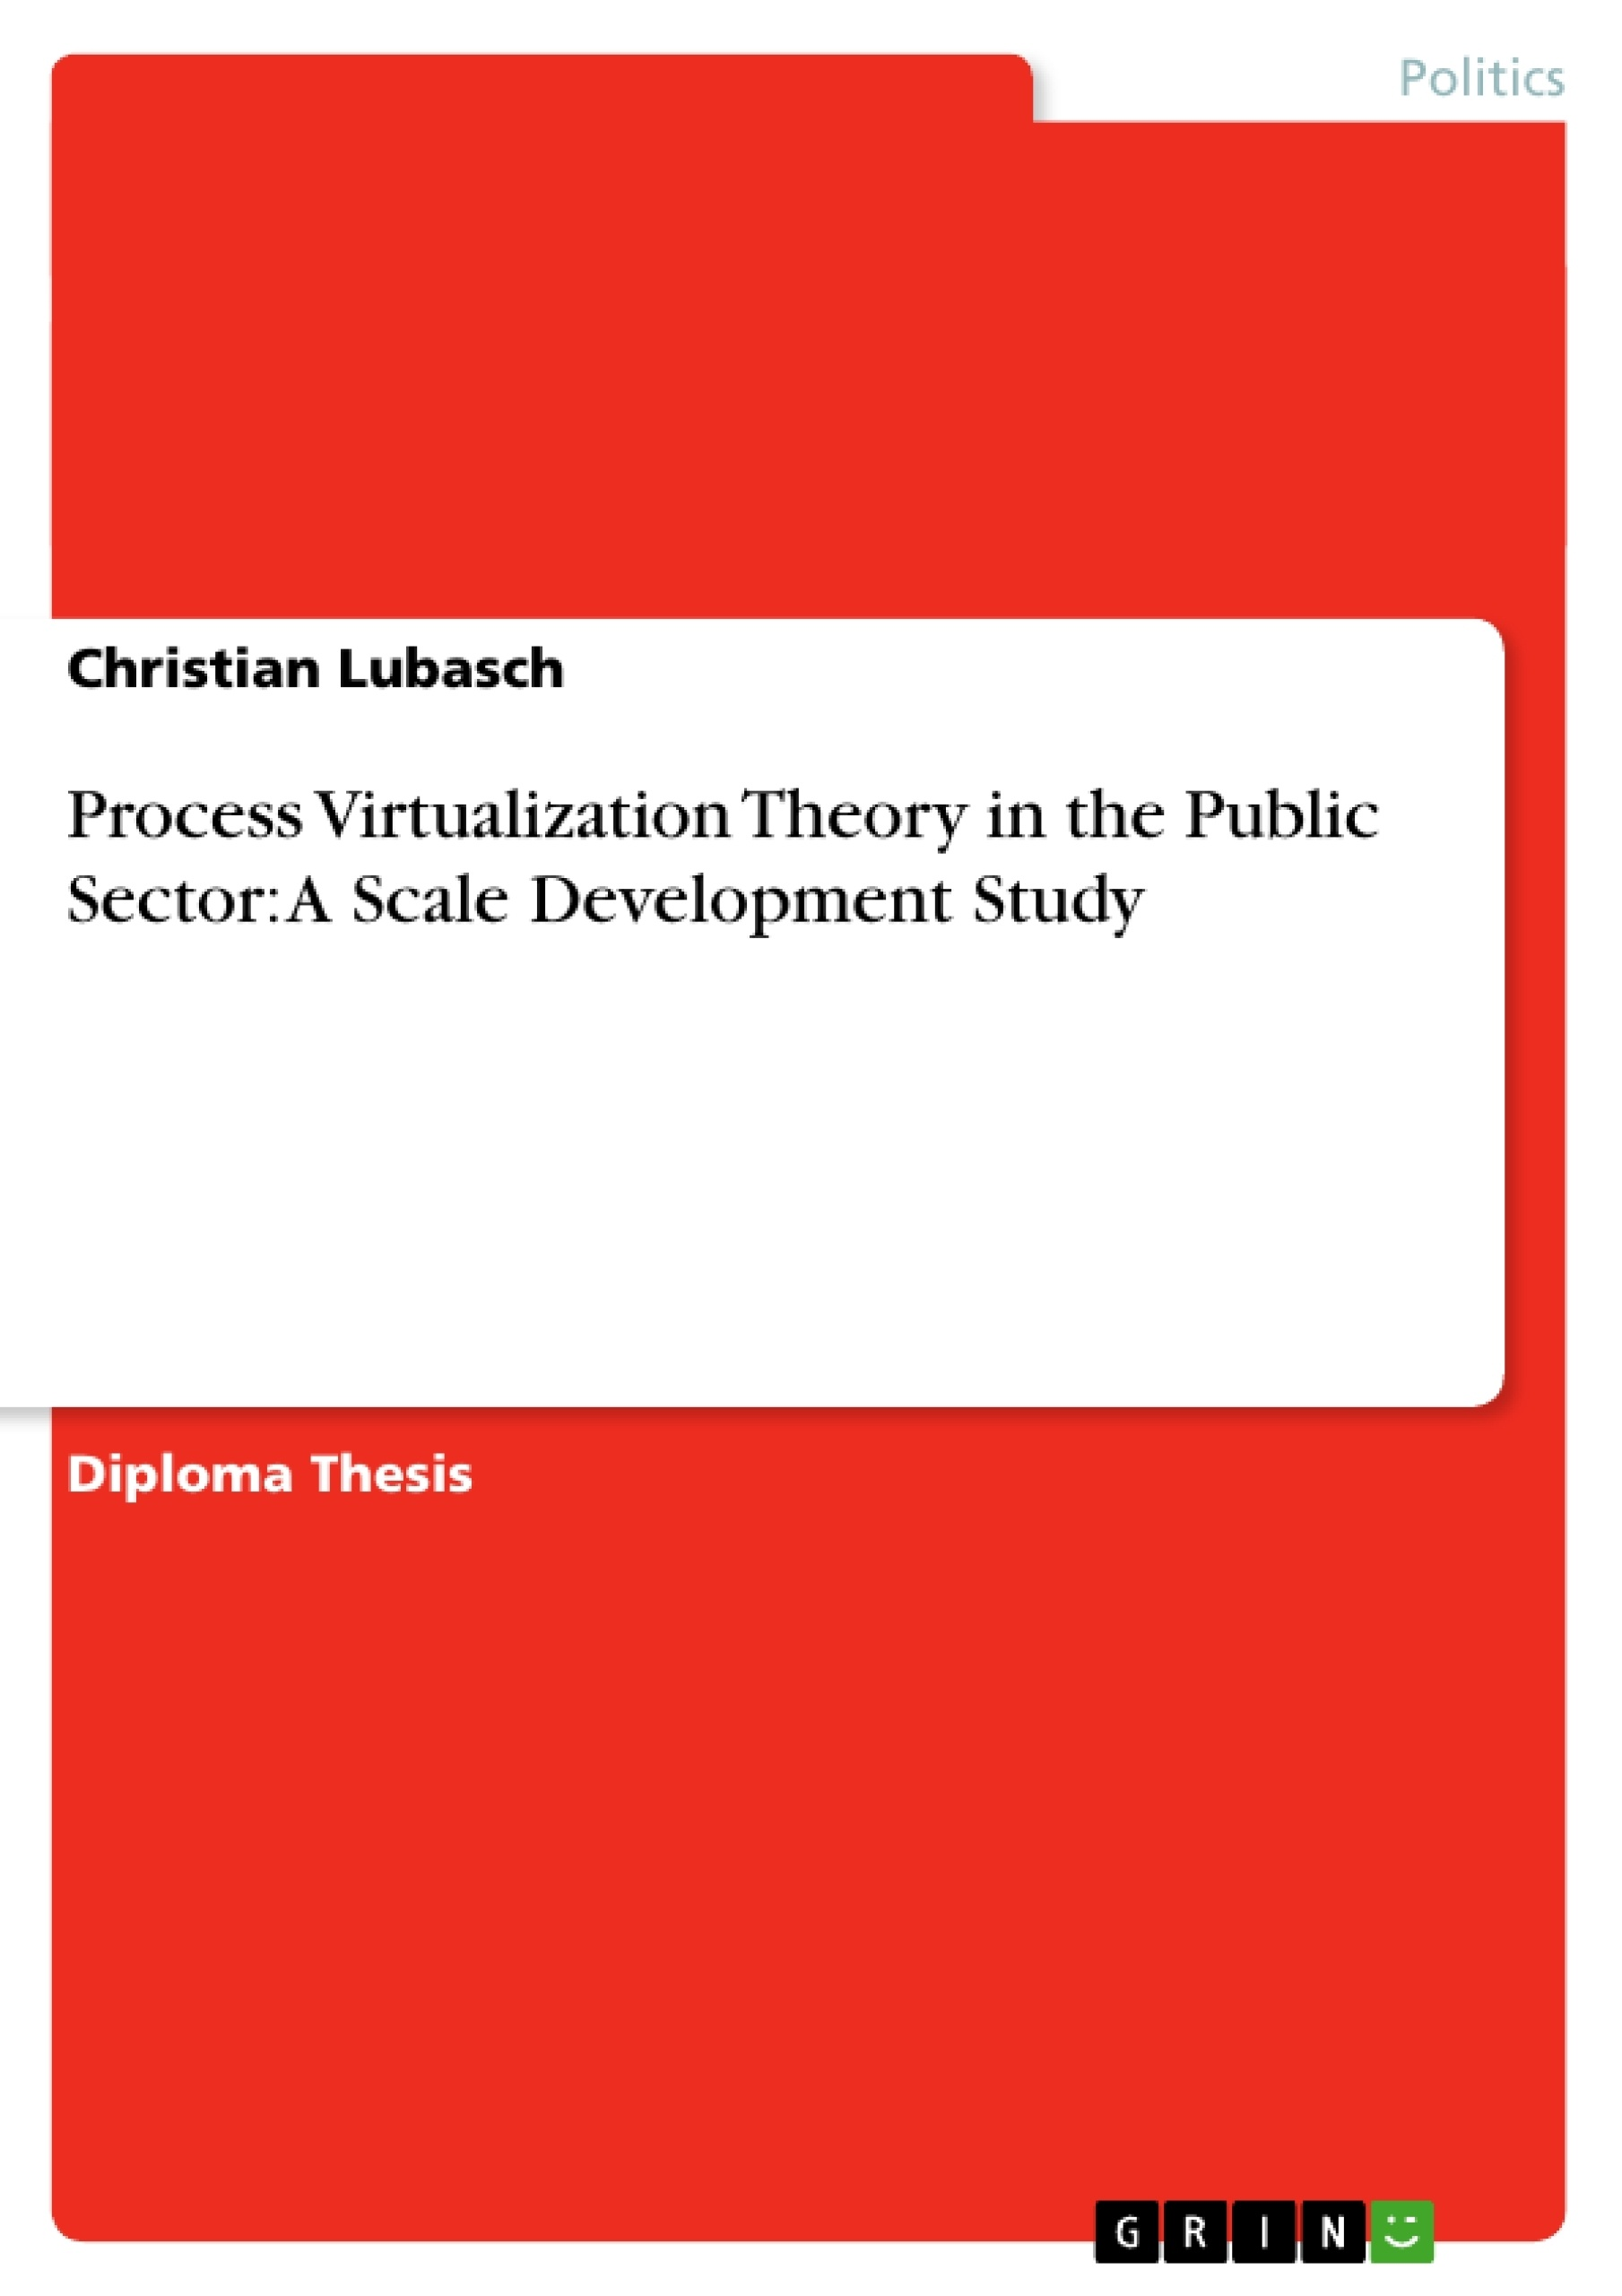 Title: Process Virtualization Theory in the Public Sector: A Scale Development Study